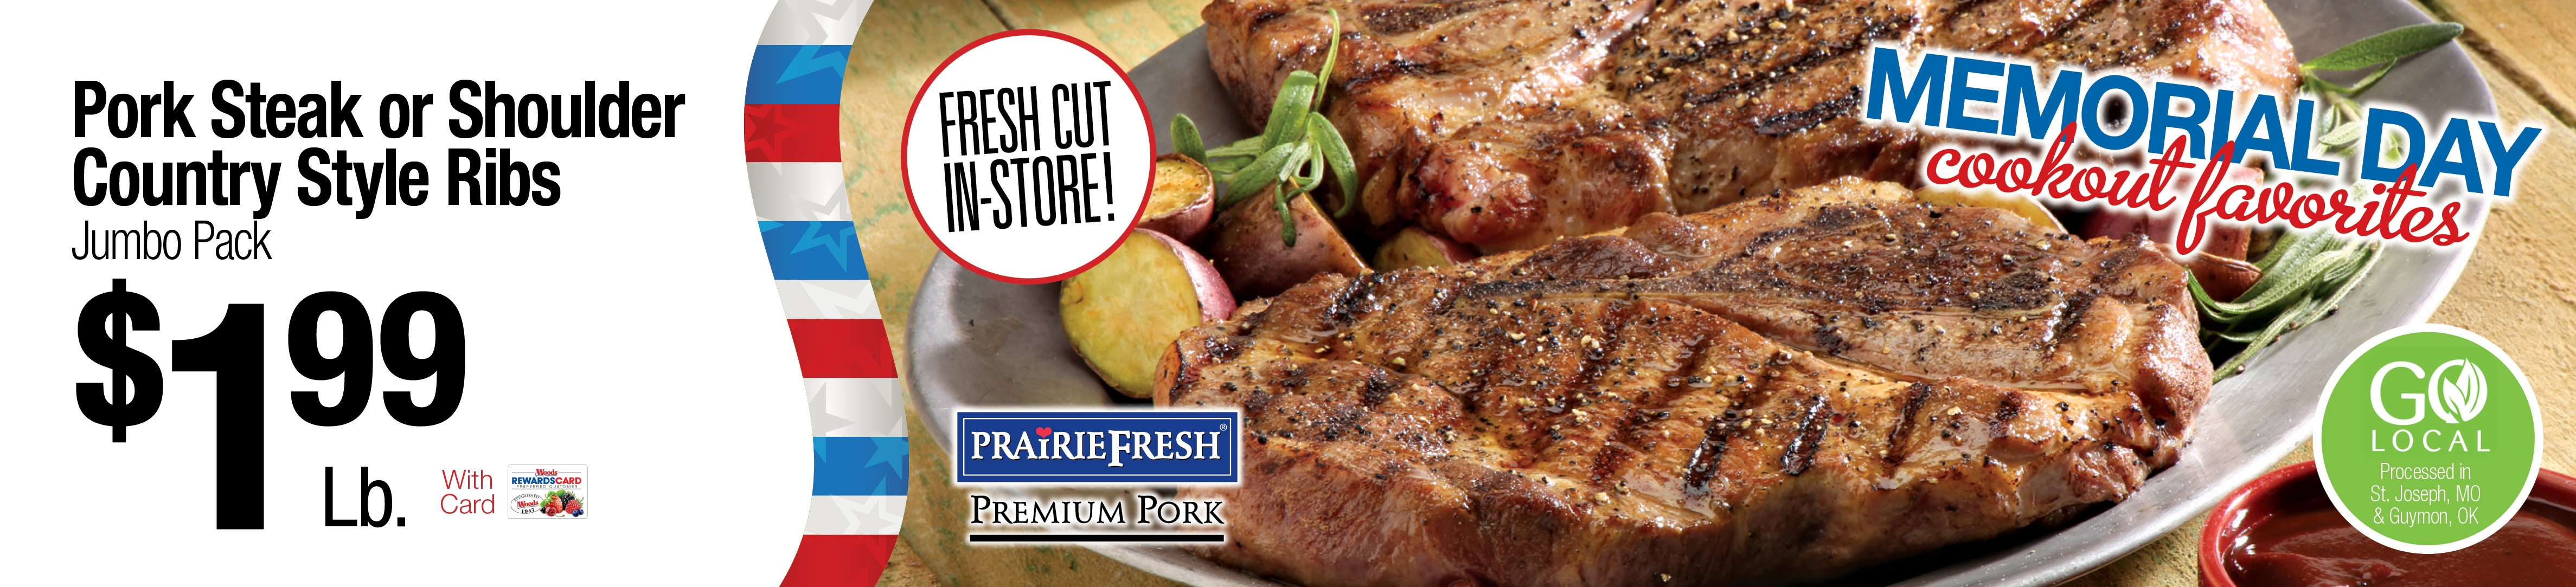 Pork Steak of Shoulder Country Style Ribs Jumbo Pack $1.99/lb